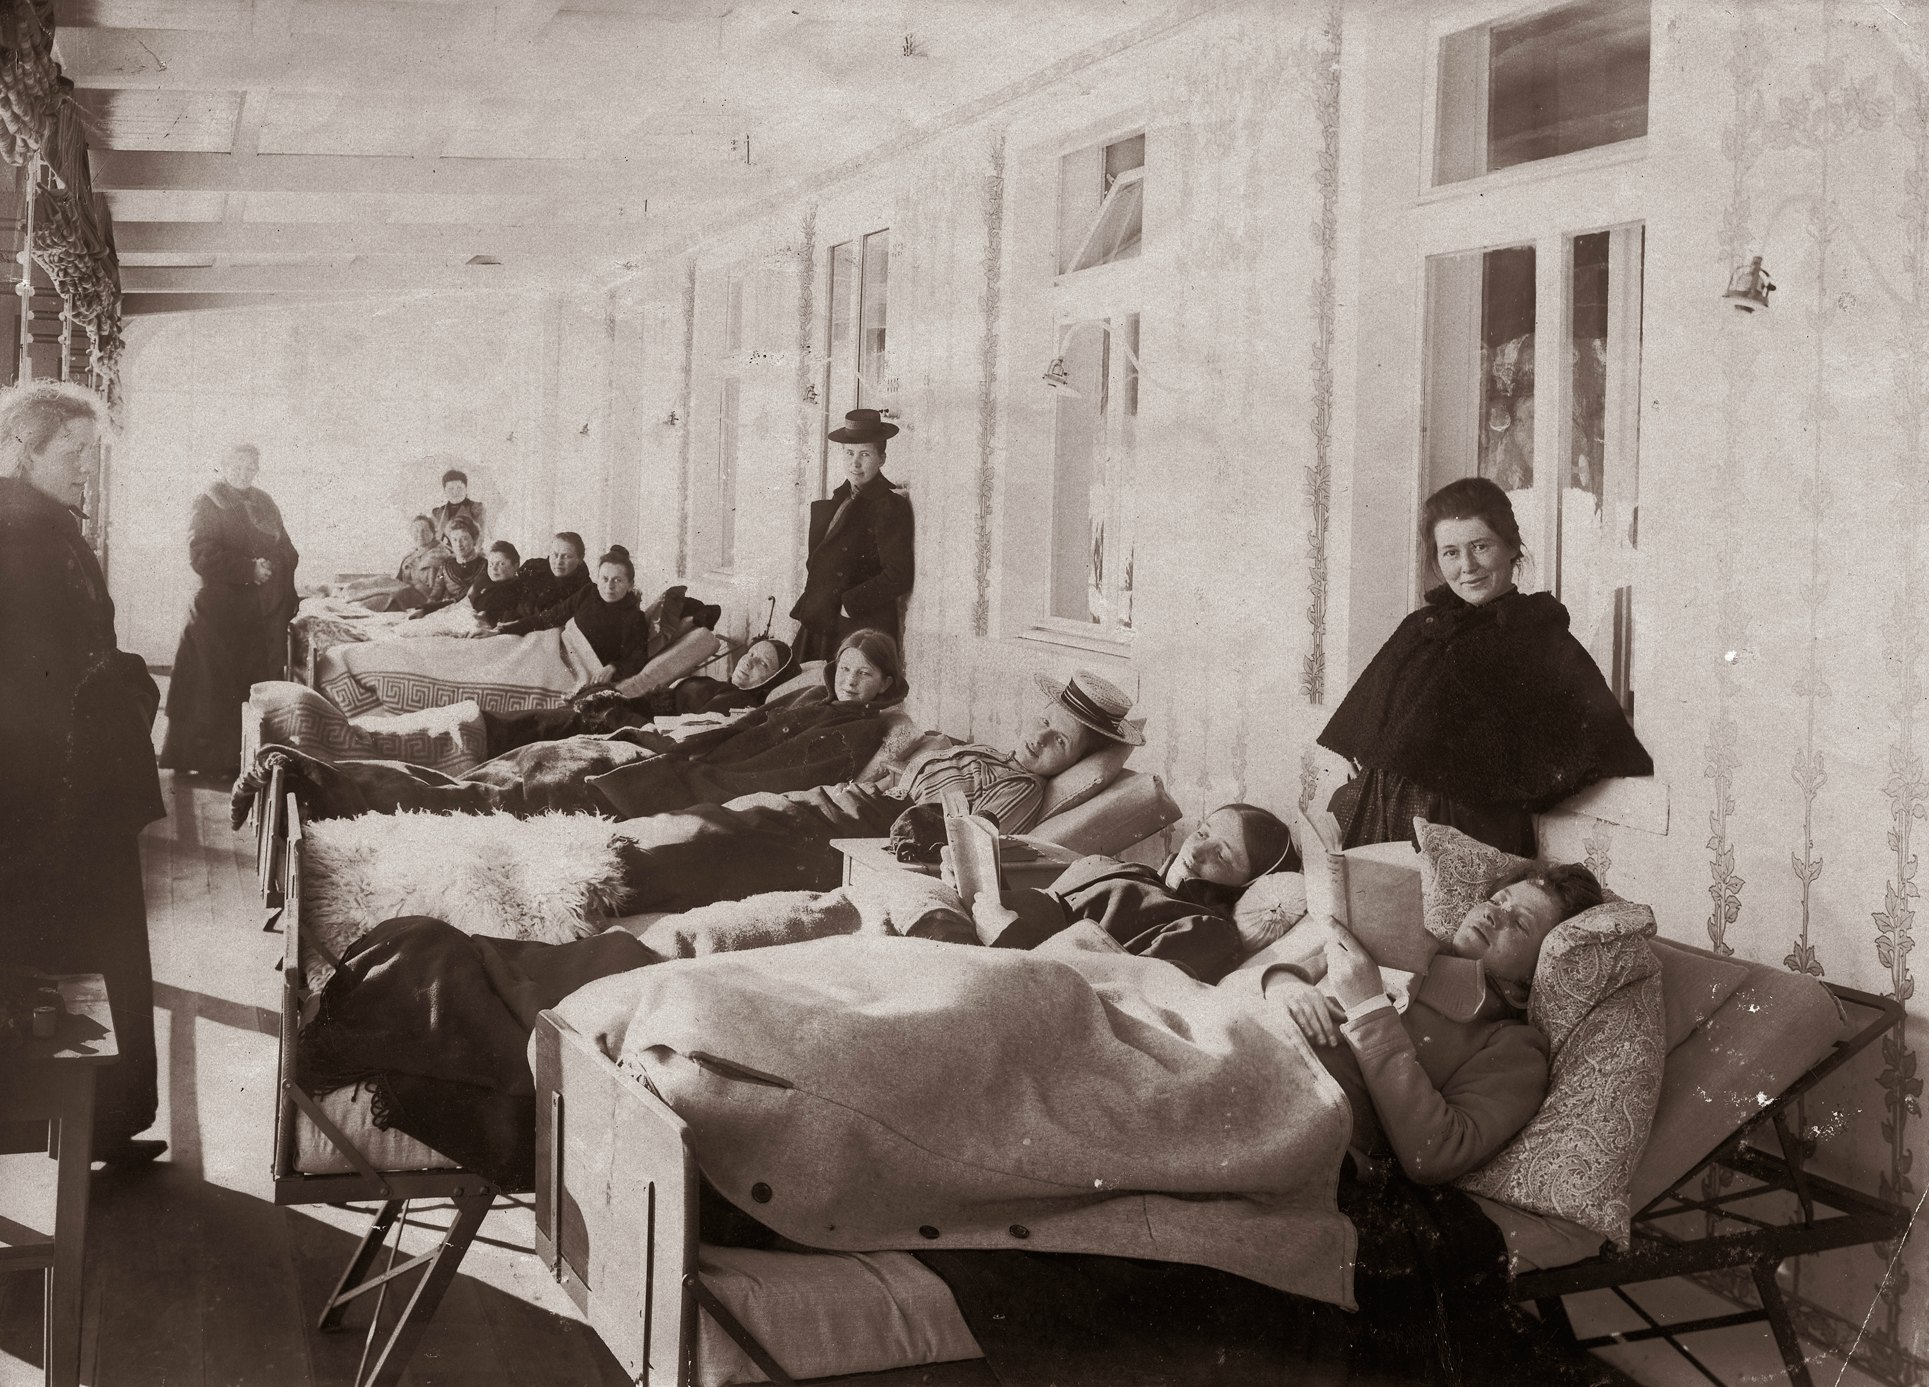 Lung disease patients resting in the sun lounge, ca 1900, Davos